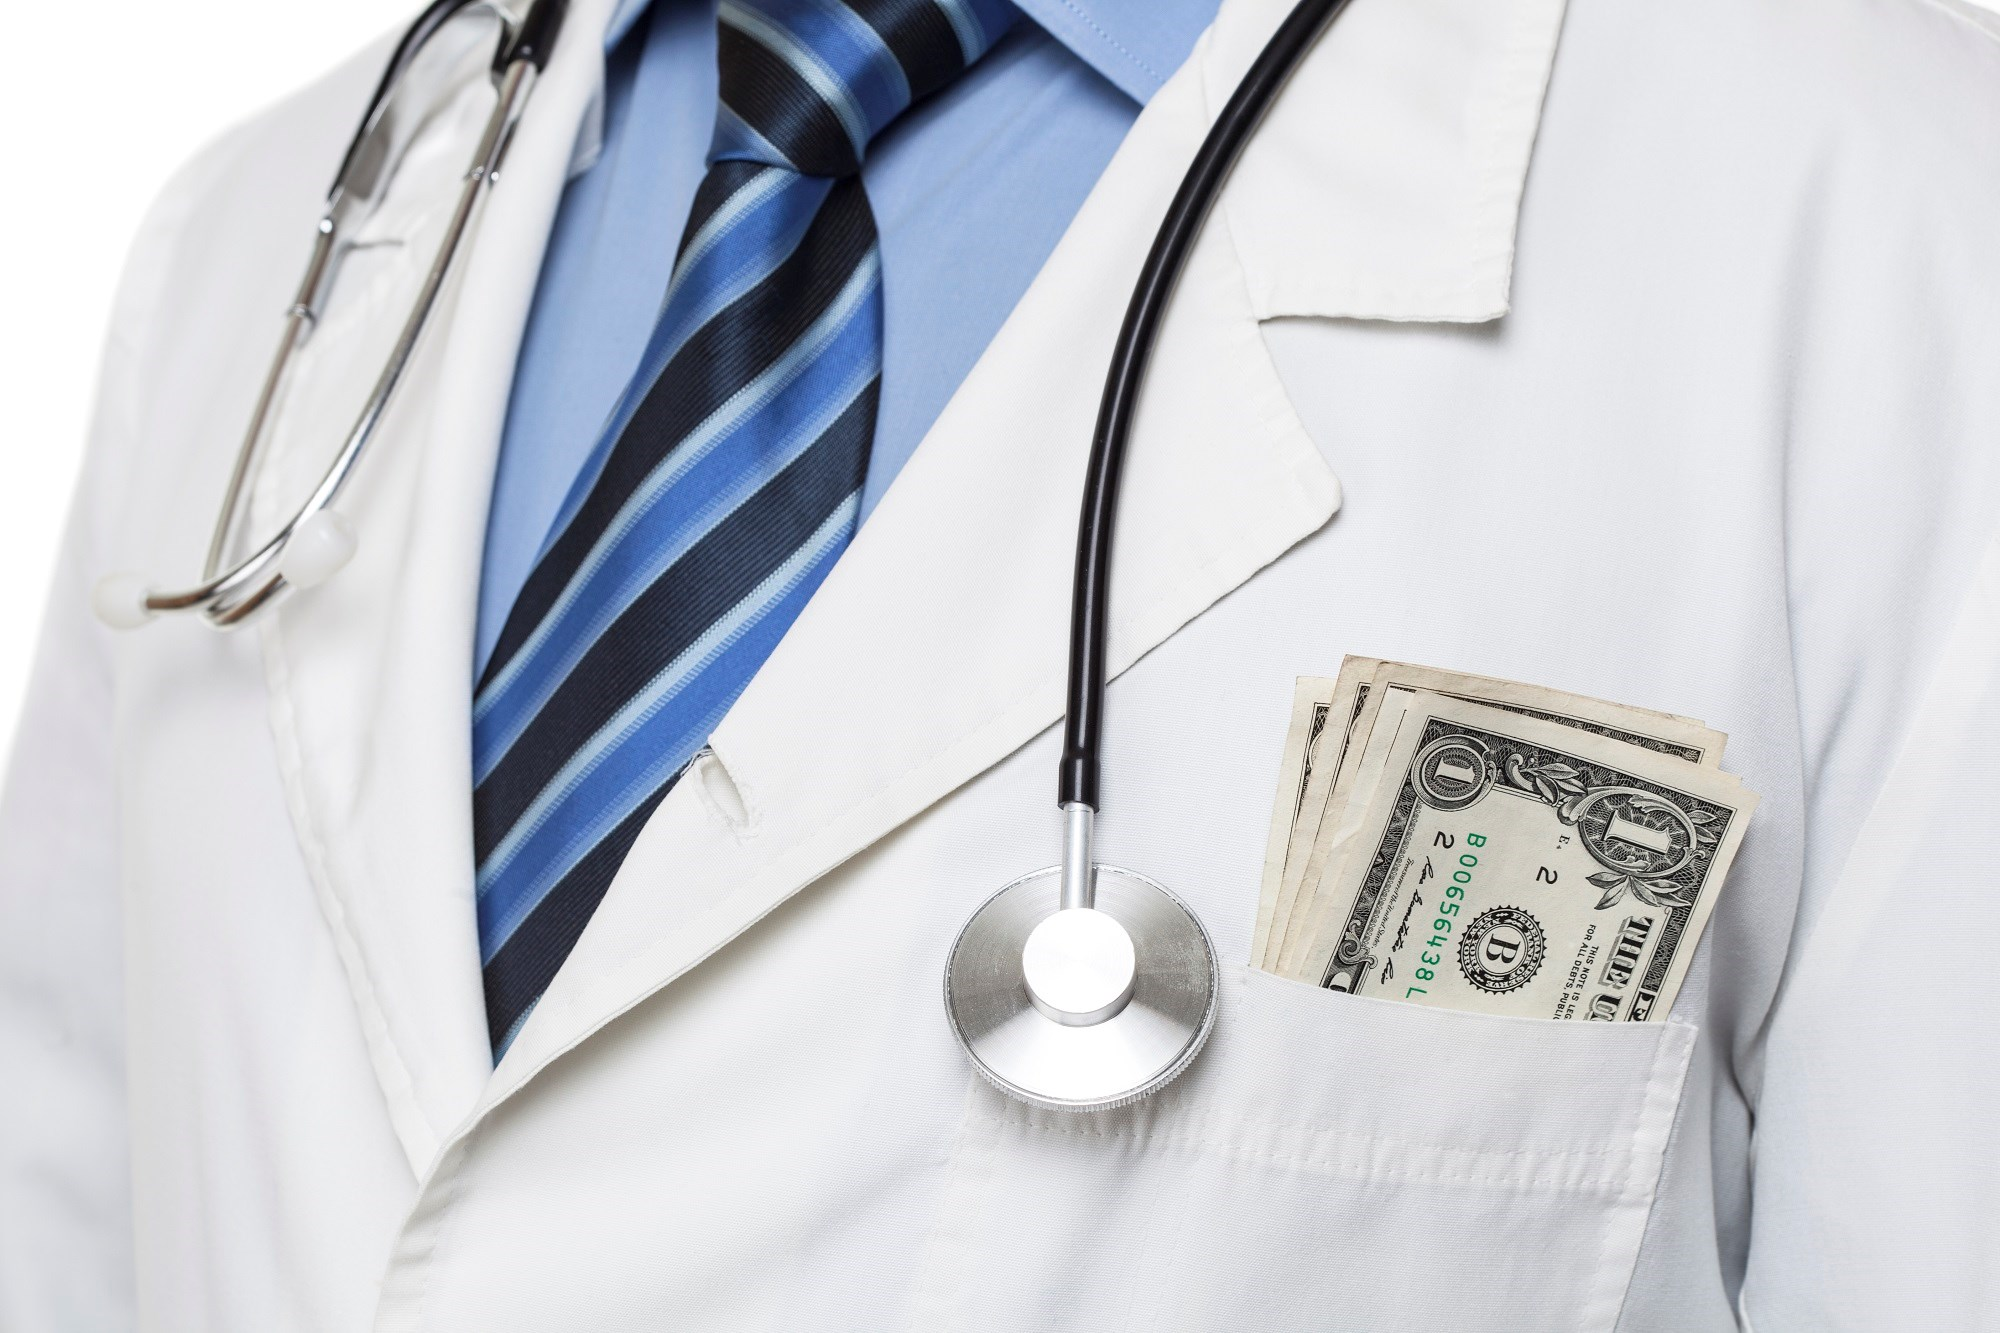 Embezzlement occurs frequently in medical practices and steps should be taken to prevent it.